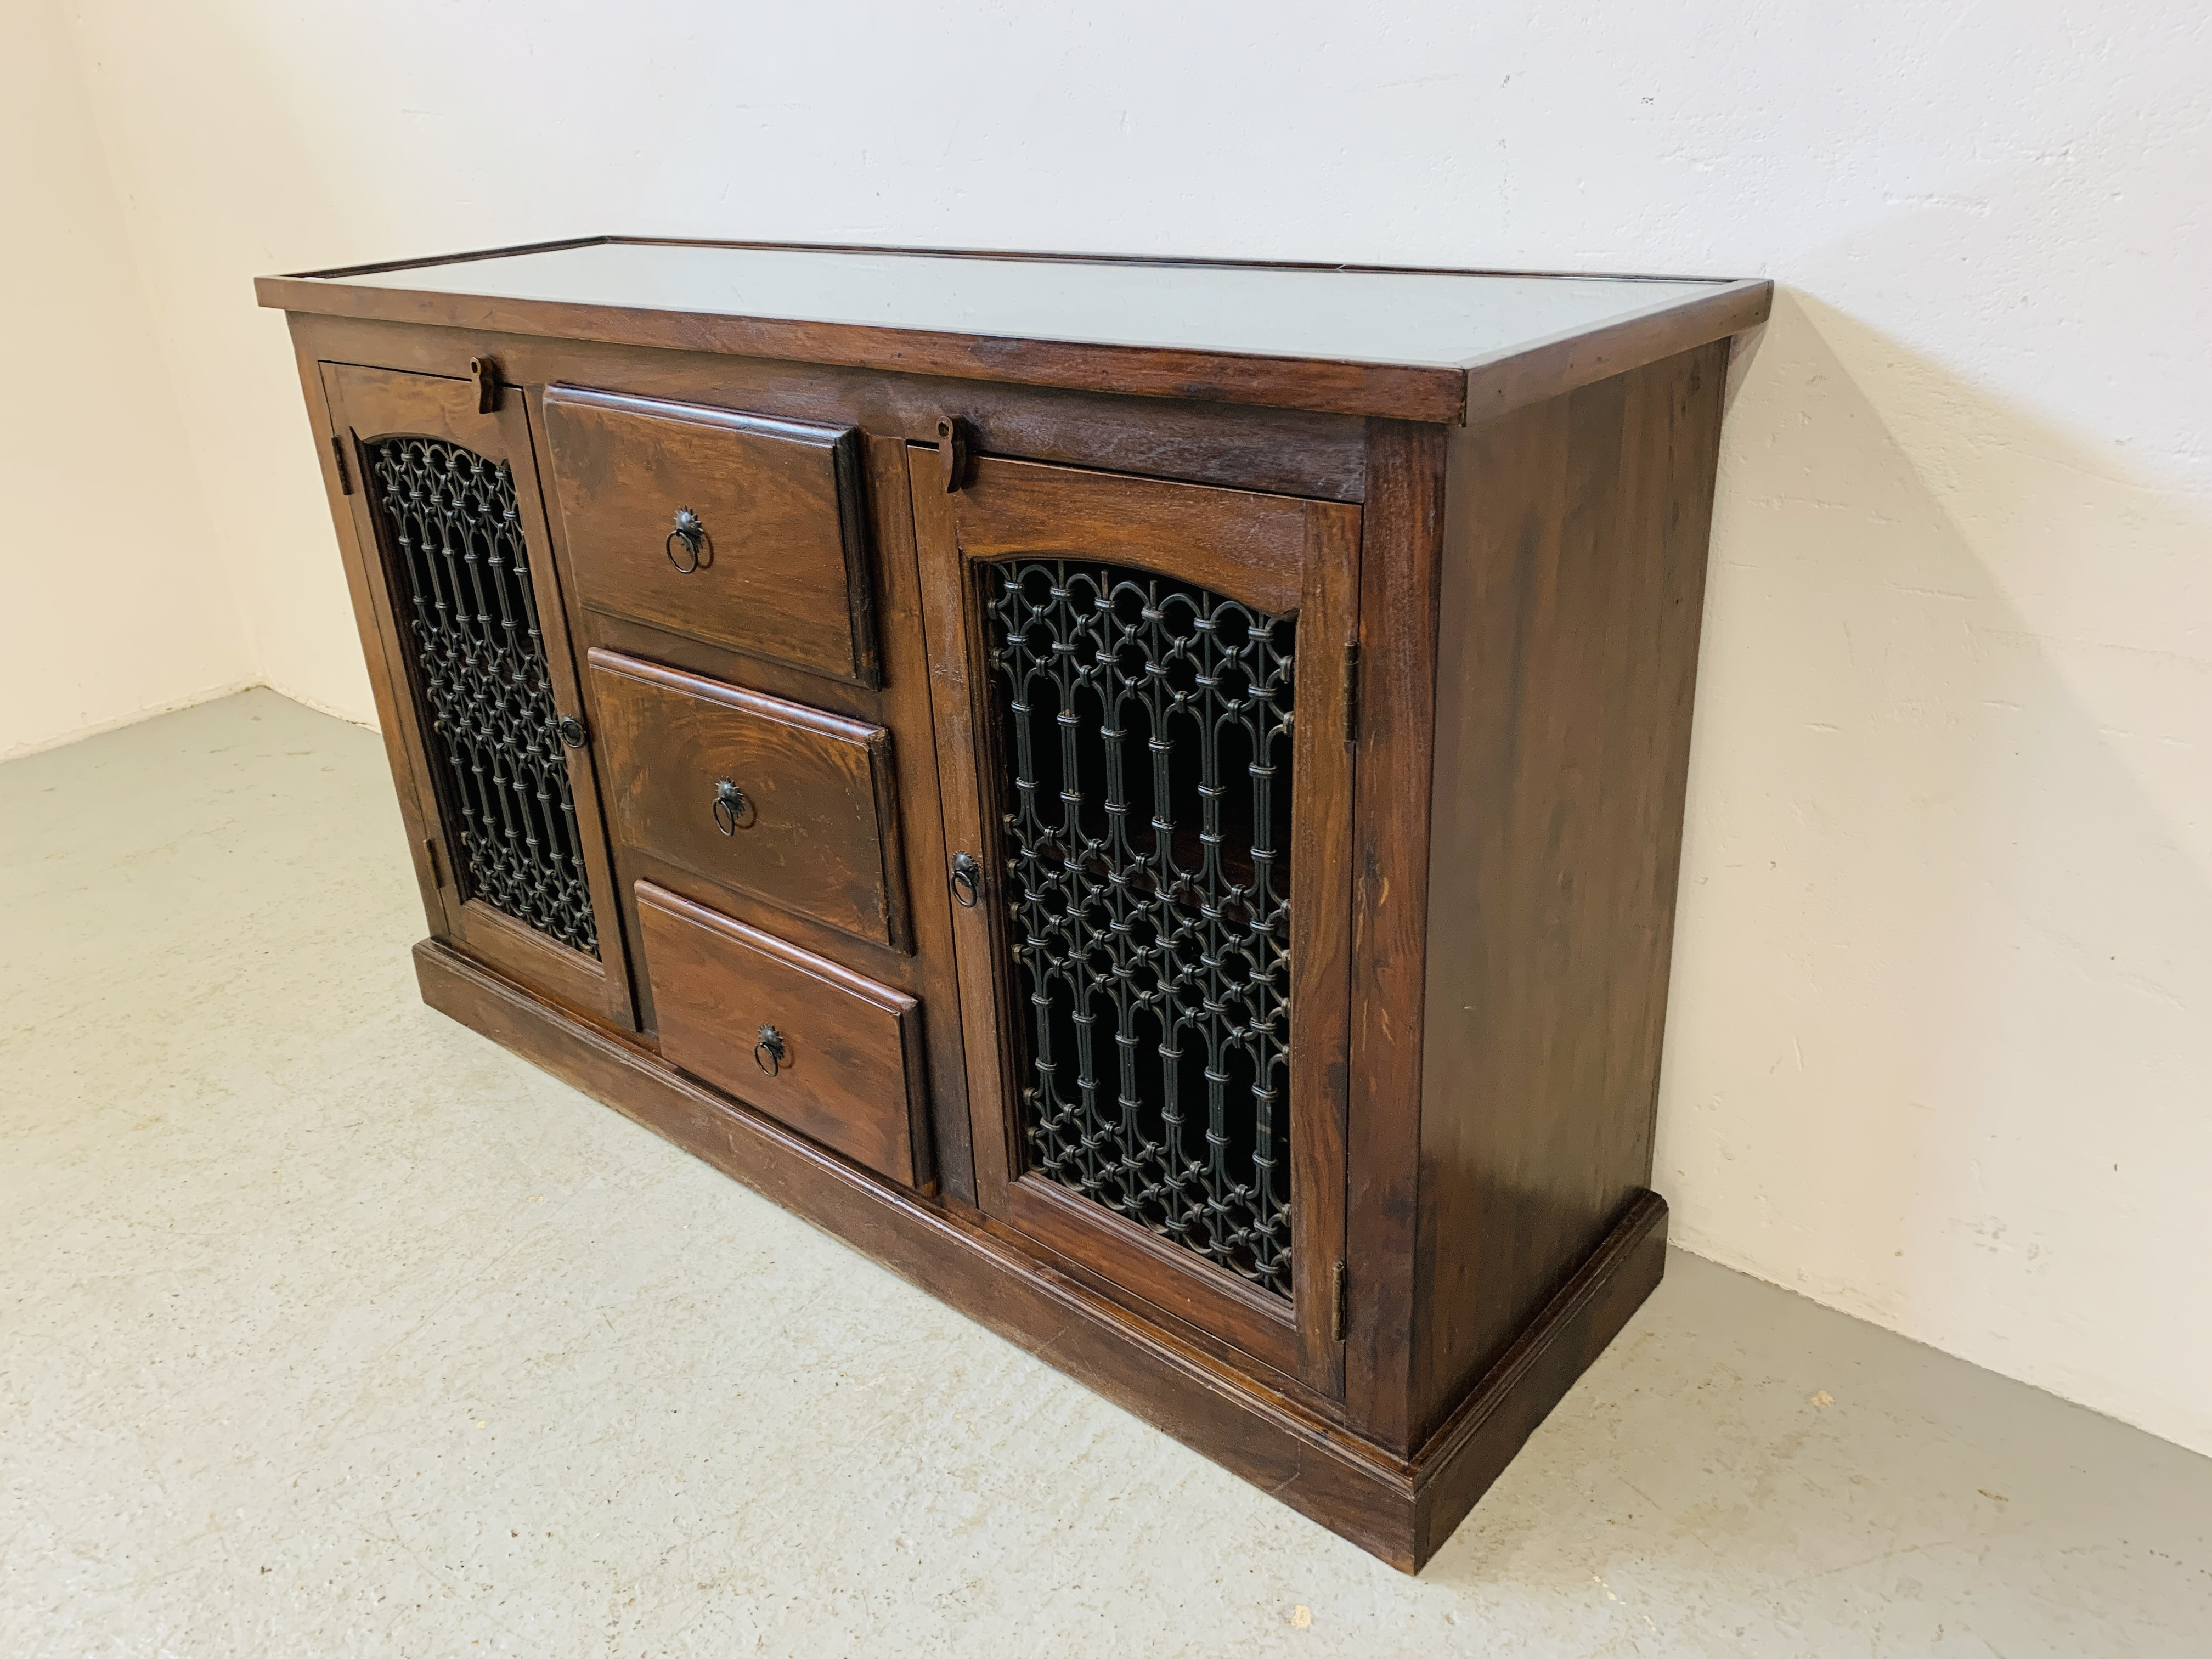 A RUSTIC HARDWOOD COUNTRY & EASTERN STYLE DRESSER BASE, - Image 3 of 9